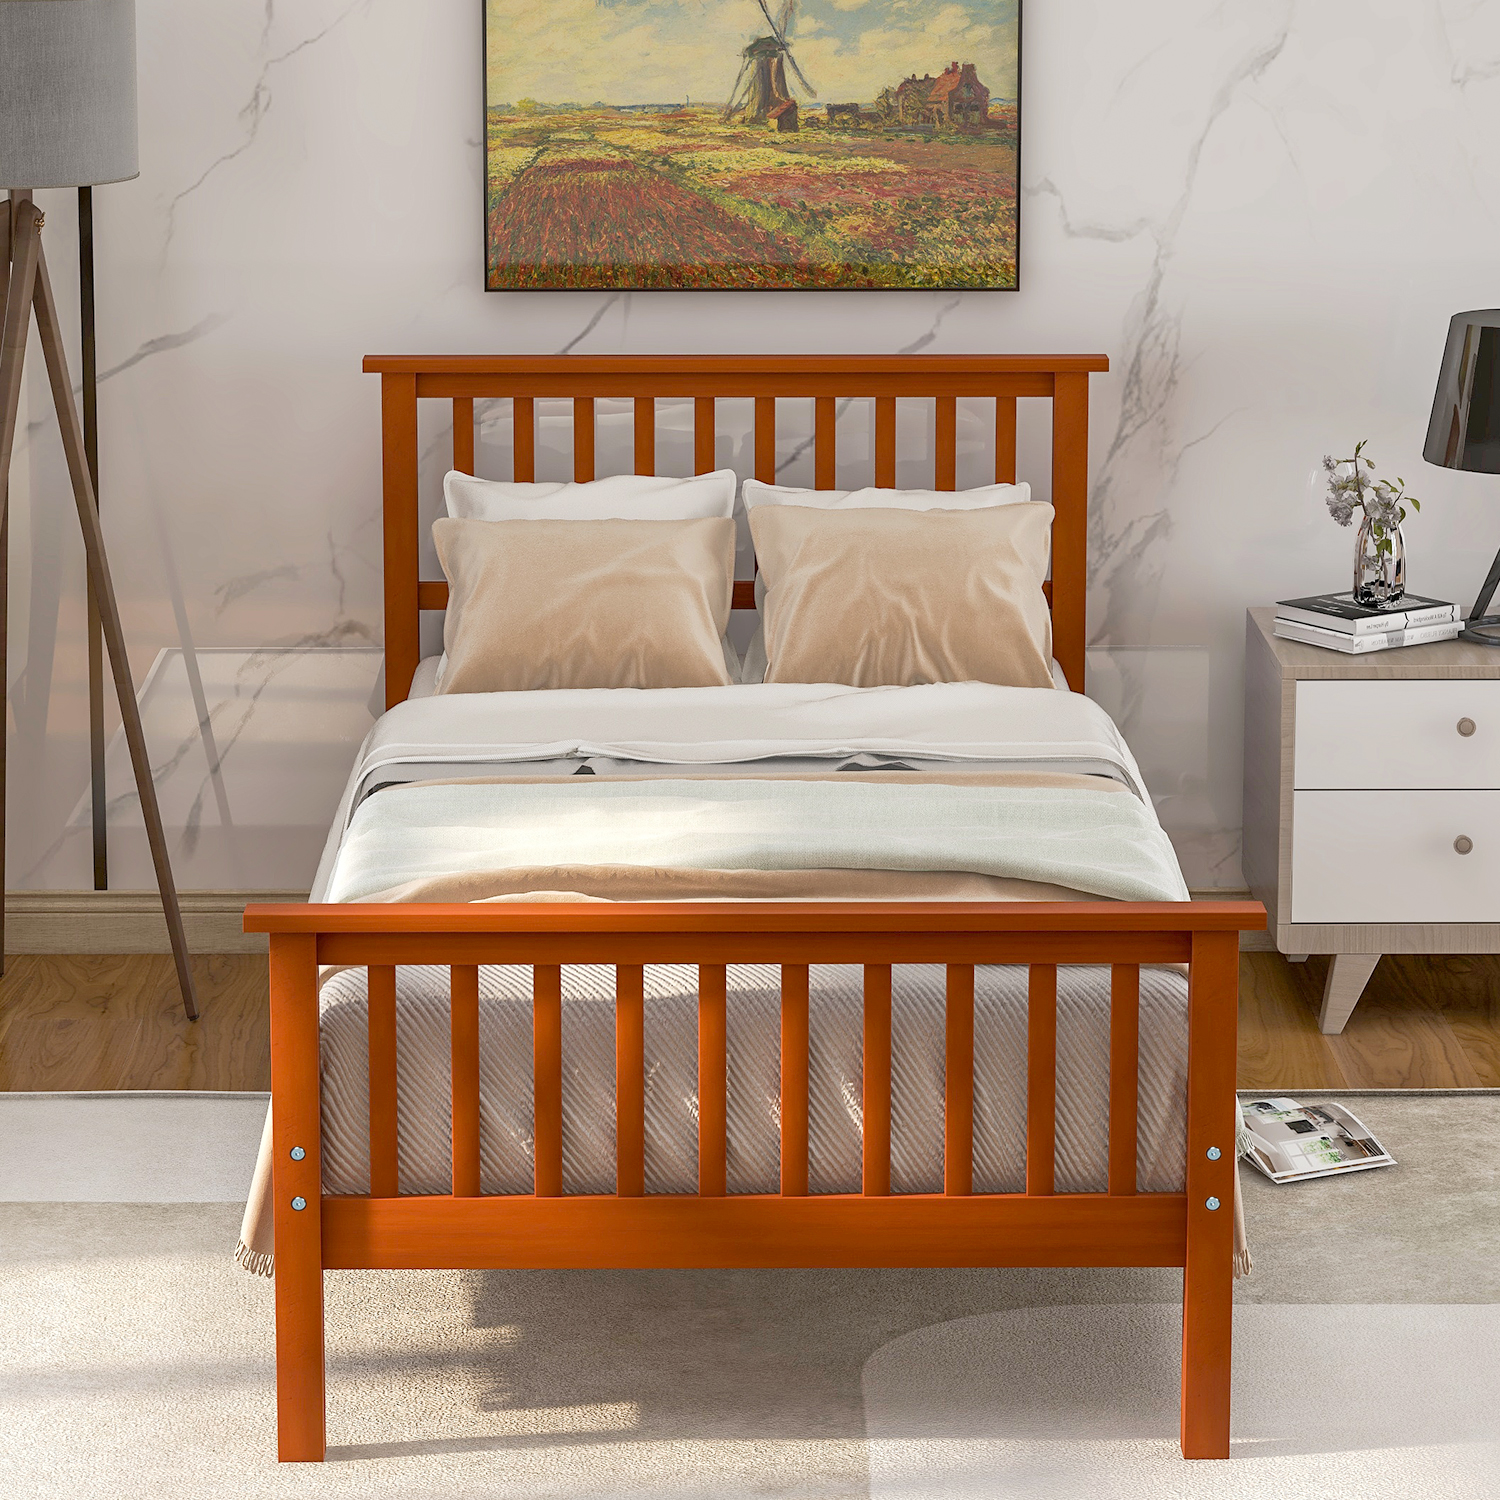 Twin Bed Solid Wood Twin Bed Frame For Kids Platform Bed Frame With Headboard And Footboard Classic Twin Size Bed Frame With Wood Slats Support Holds 275 Lb No Box Spring Needed